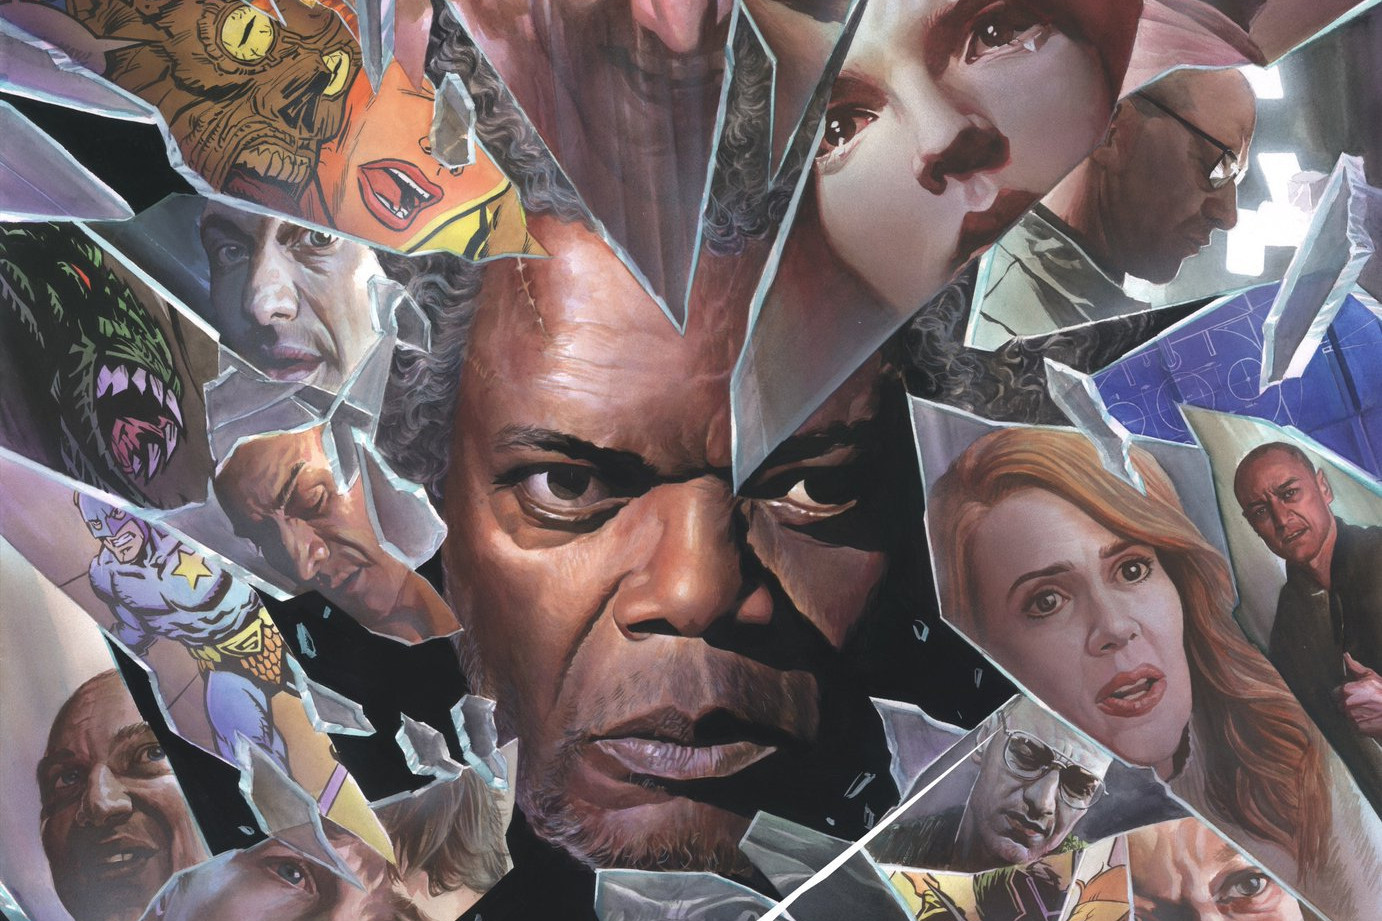 M. Night Shyamalan Glass Review Split Unbreakable Samuel L. Jackson Mr. Glass Bruce Willis James McAvoy January 18 2019 Mr. Glass The Overseer The Beast The Horde